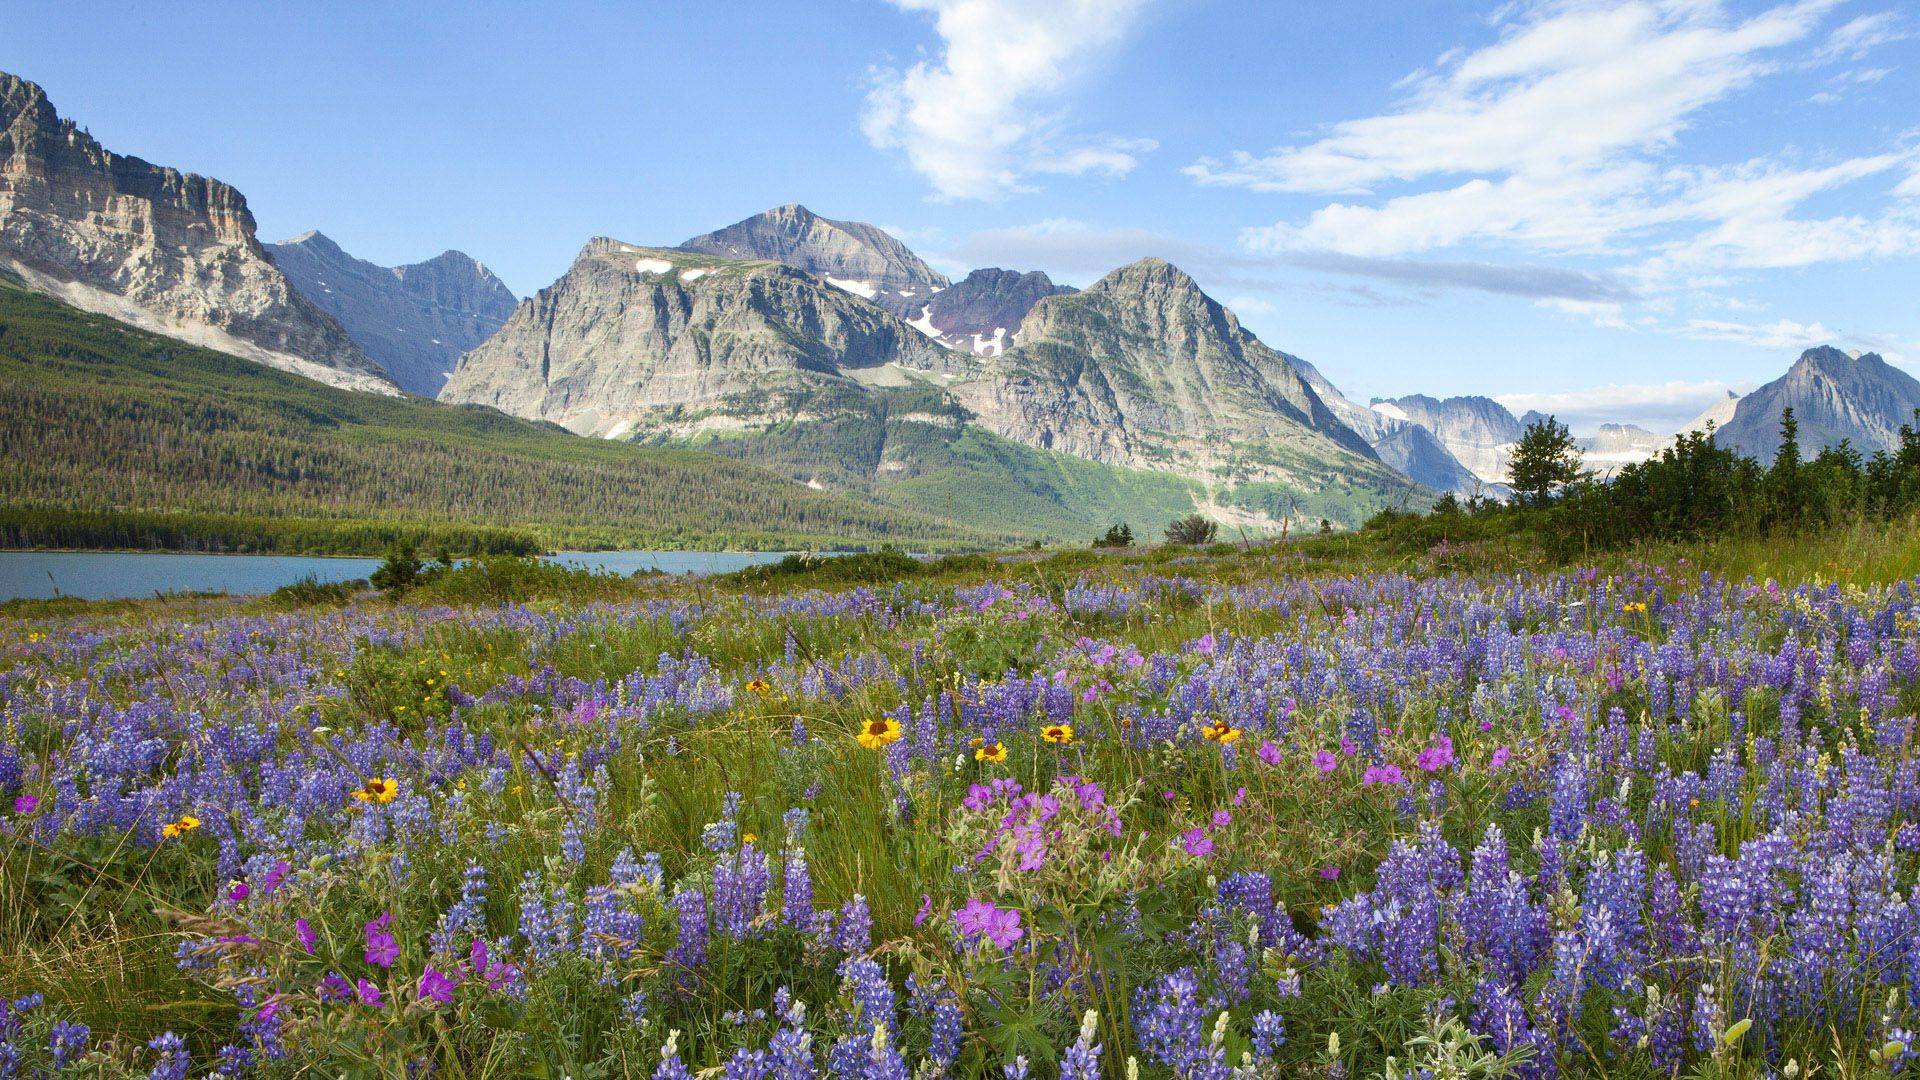 Glacier National Park hd image